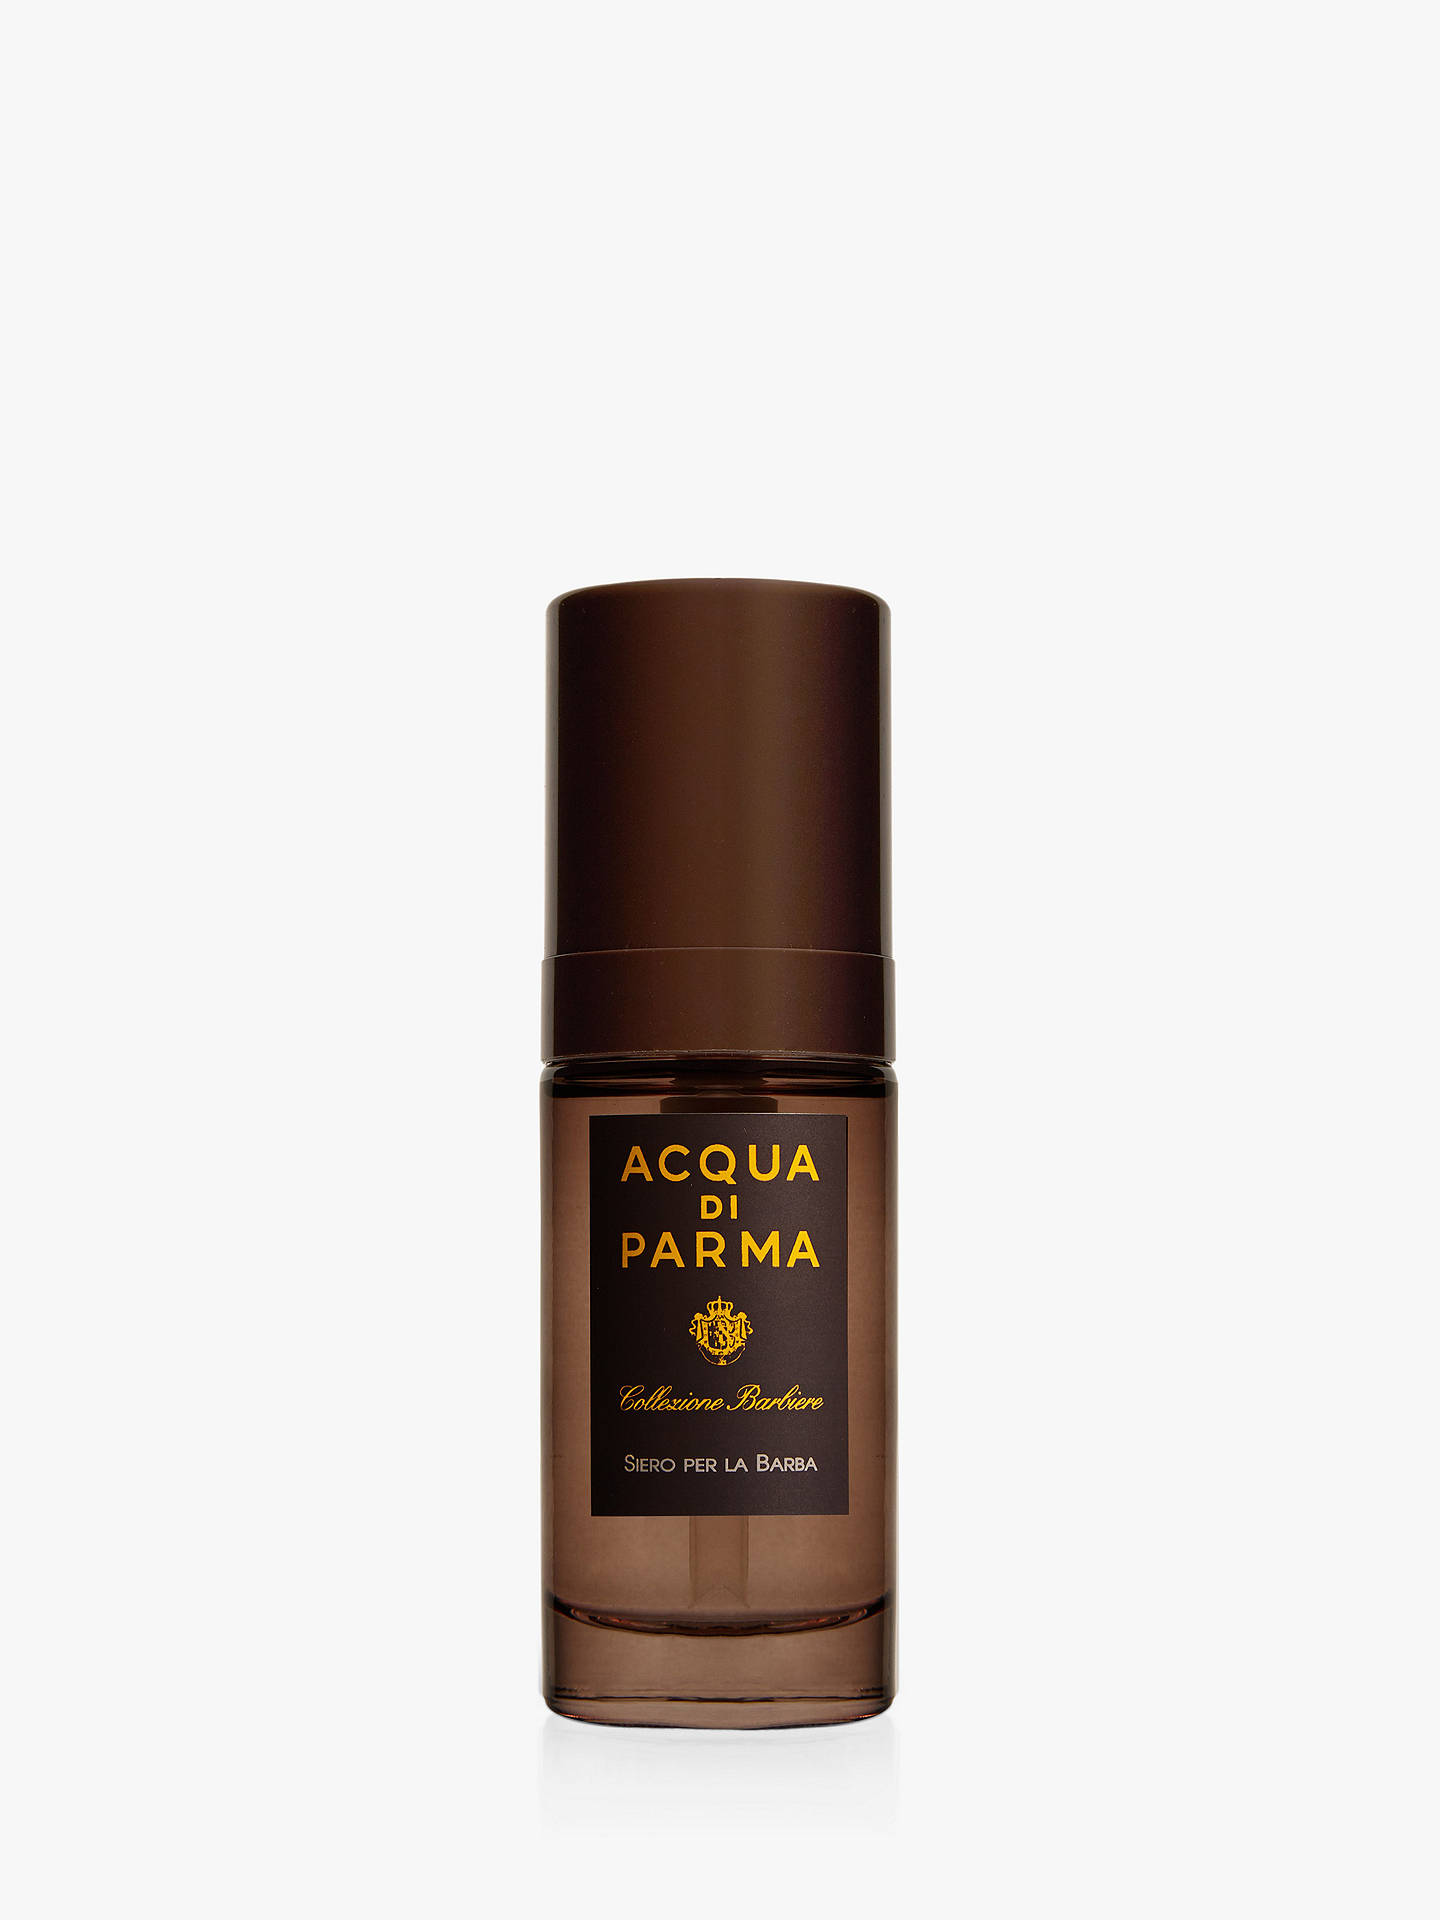 Buy Acqua di Parma Collezione Barbiere Beard Serum, 30ml Online at johnlewis.com